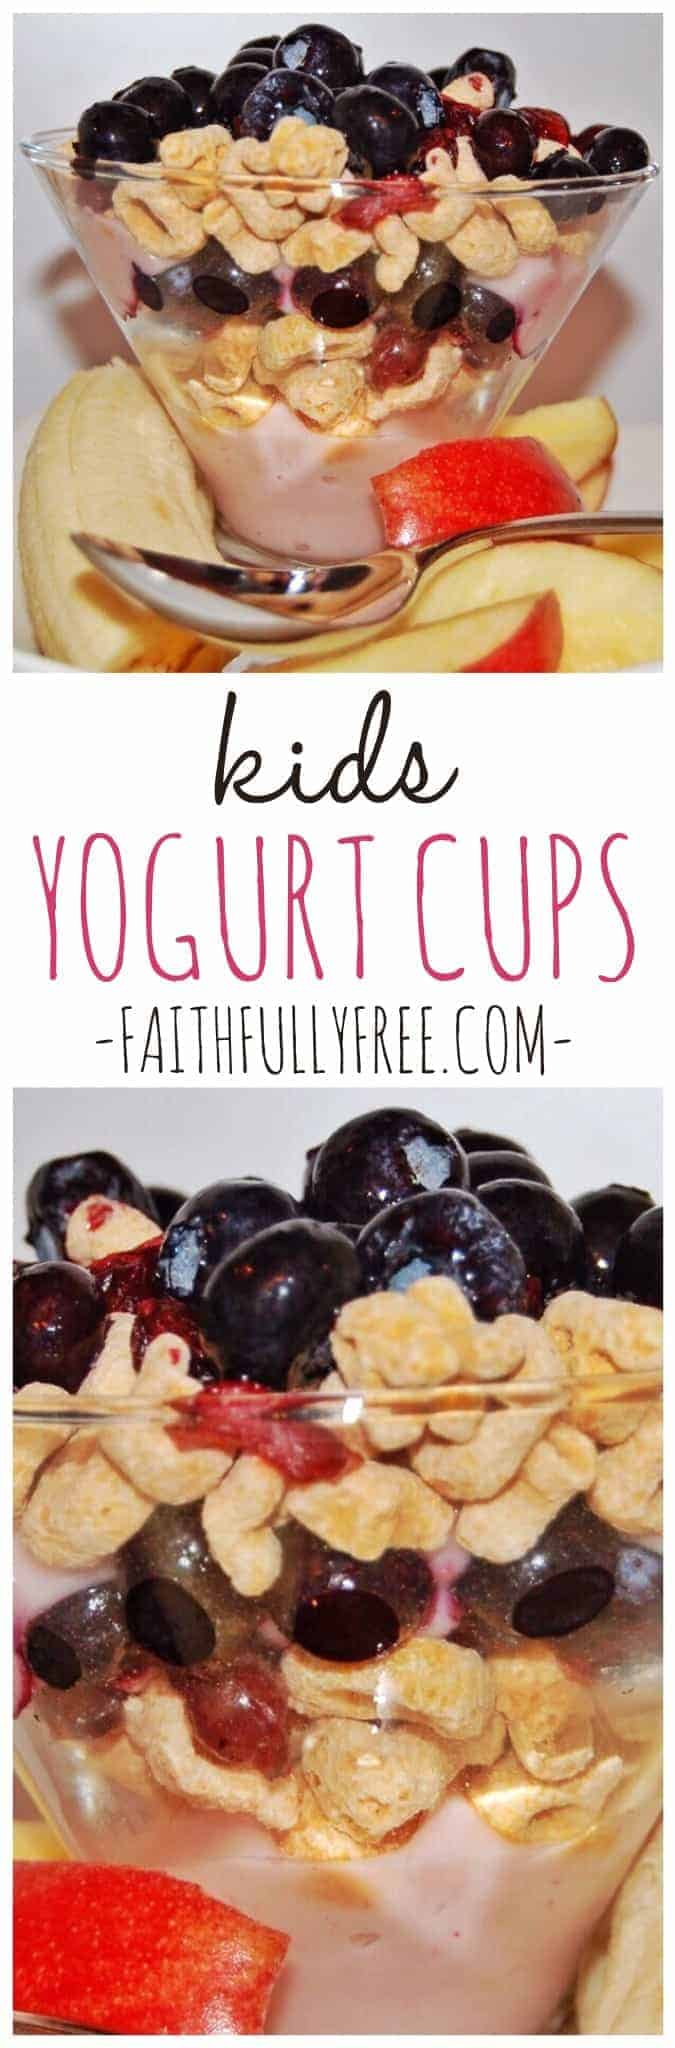 Kid's Yogurt Cups Recipe